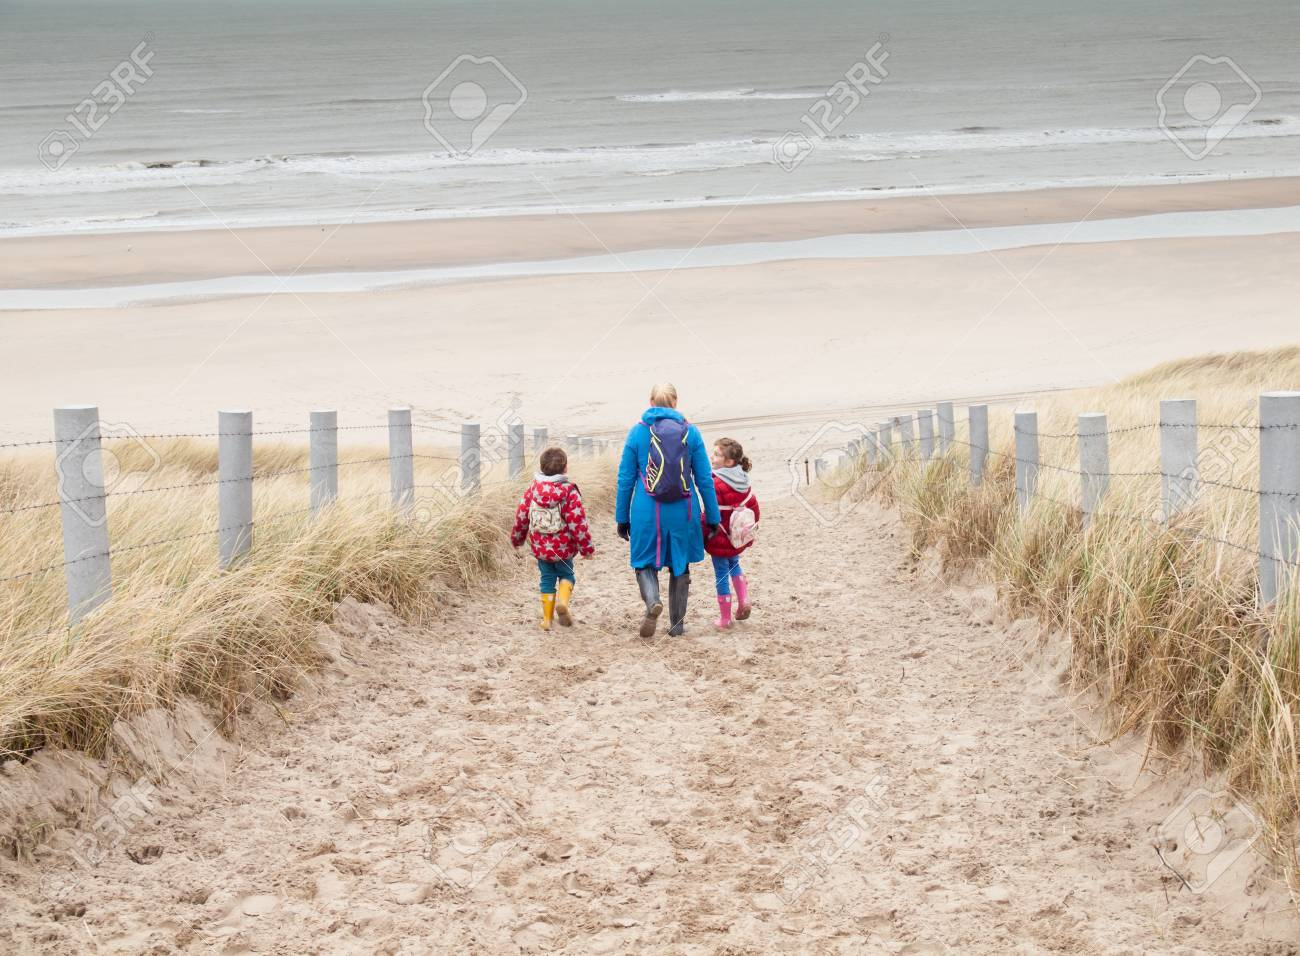 4fe9bd10ad Stock Photo - woman with small boy and girl in winter clothing and rubber  boots walking down to a winter beach along a dune path